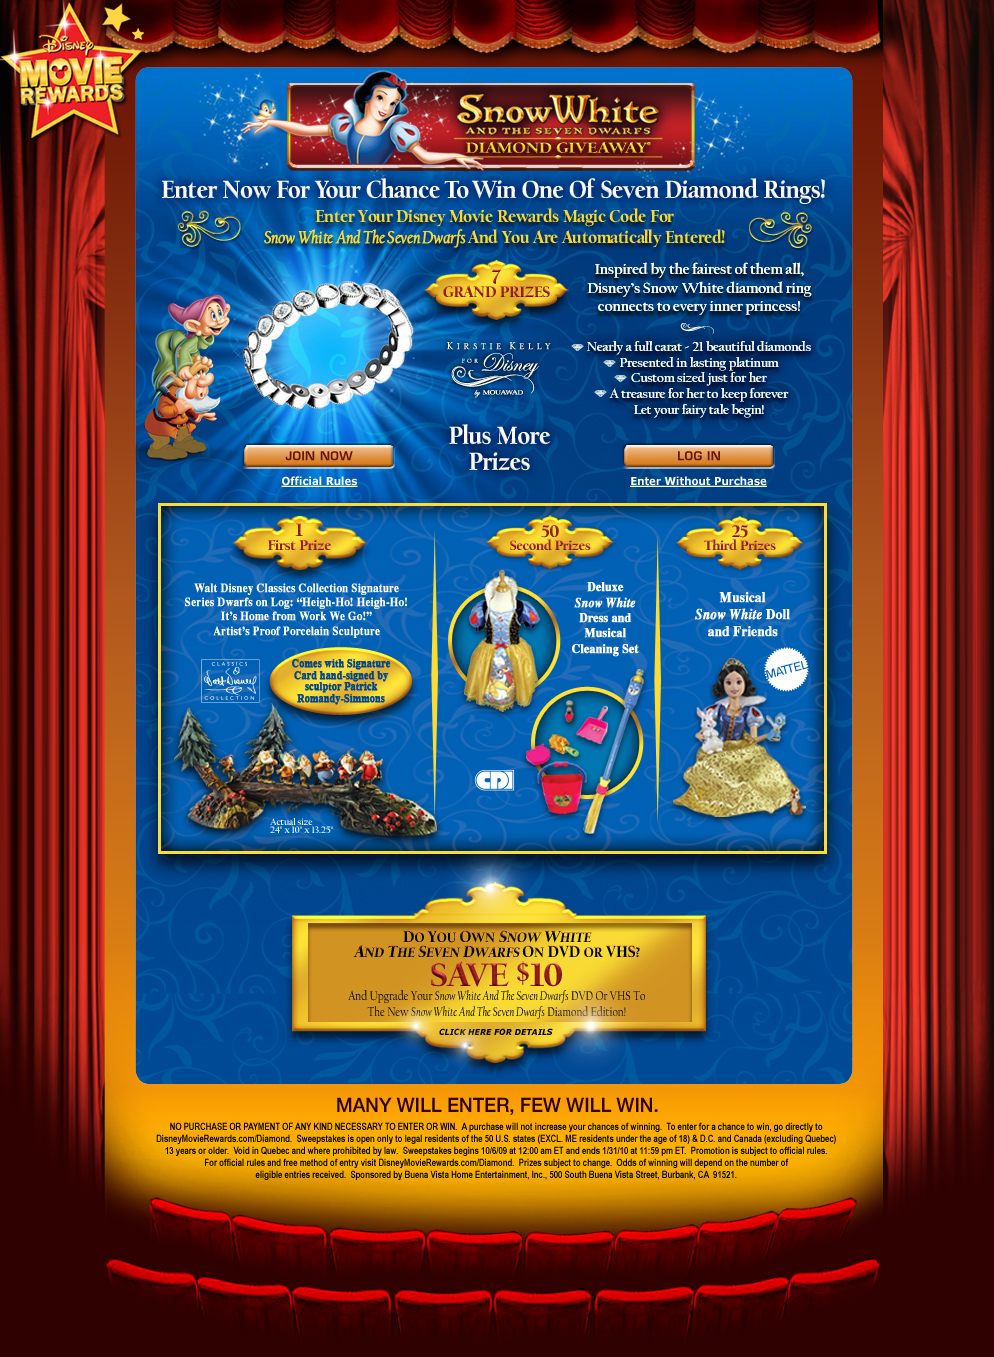 snow white and the seven dwarfs diamond giveaway